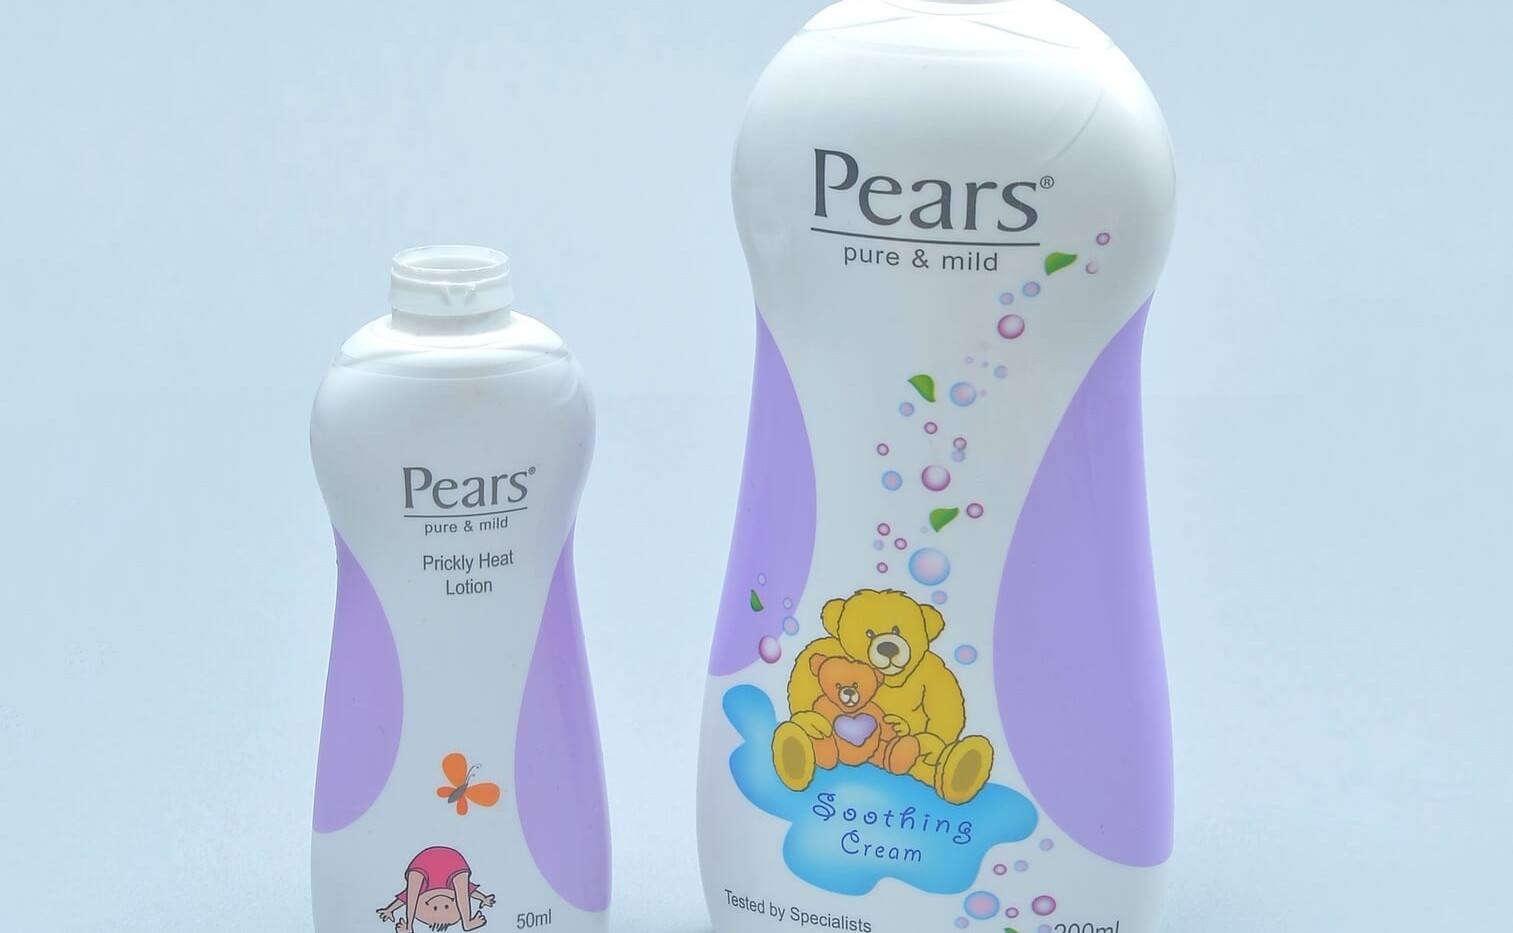 Pears Baby Shampoo shrink sleeved bottle